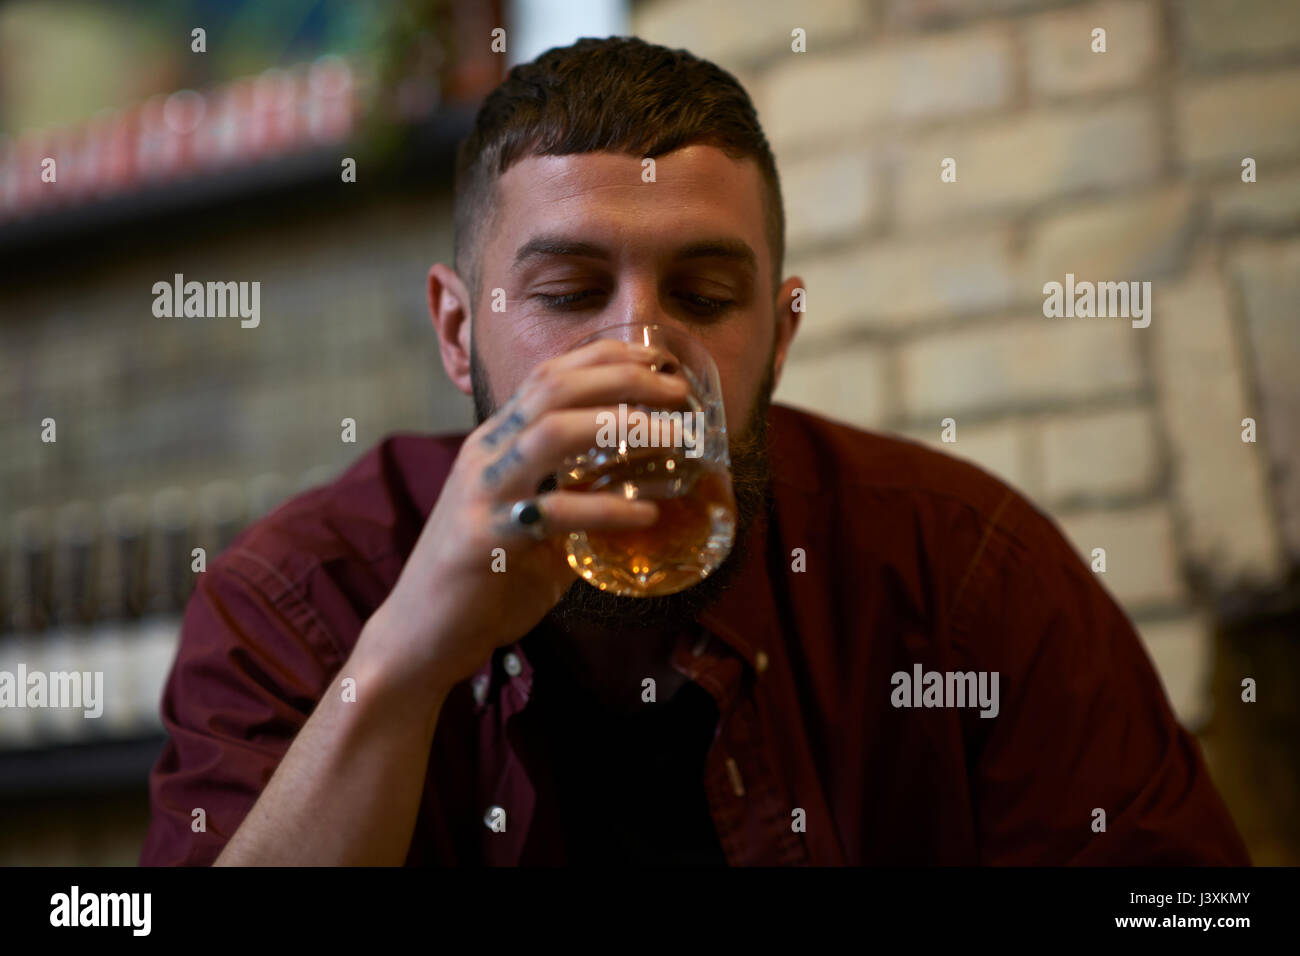 Young man with tattooed fingers drinking tumbler of spirit in public house Stock Photo